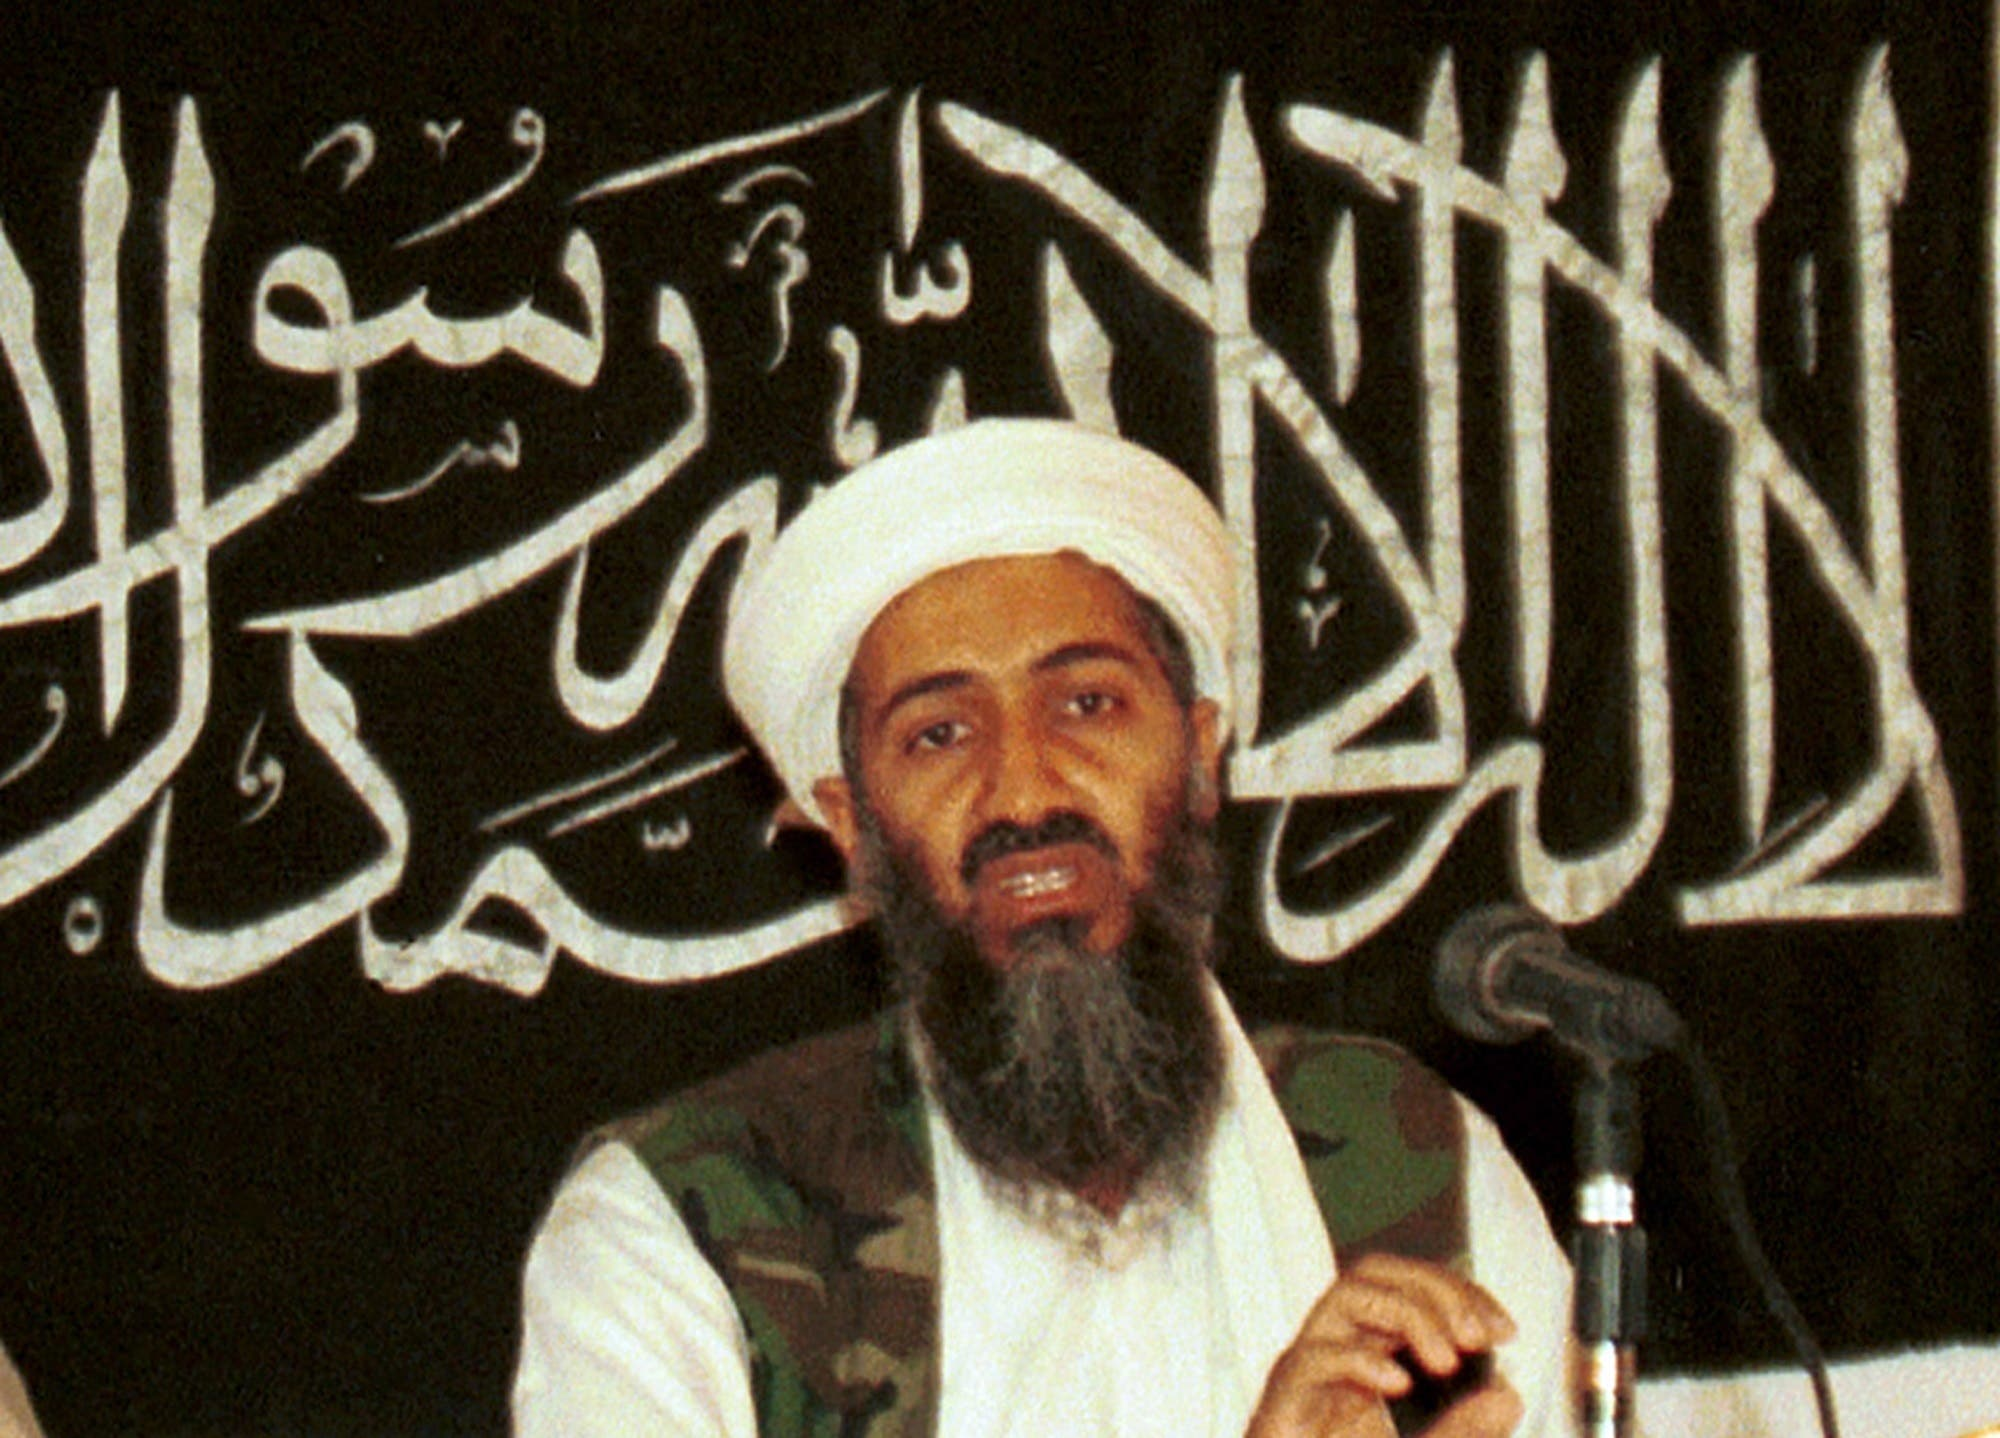 In this 1998 file photo made available on March 19, 2004, Osama bin Laden is seen at a news conference in Khost, Afghanistan. (AP)